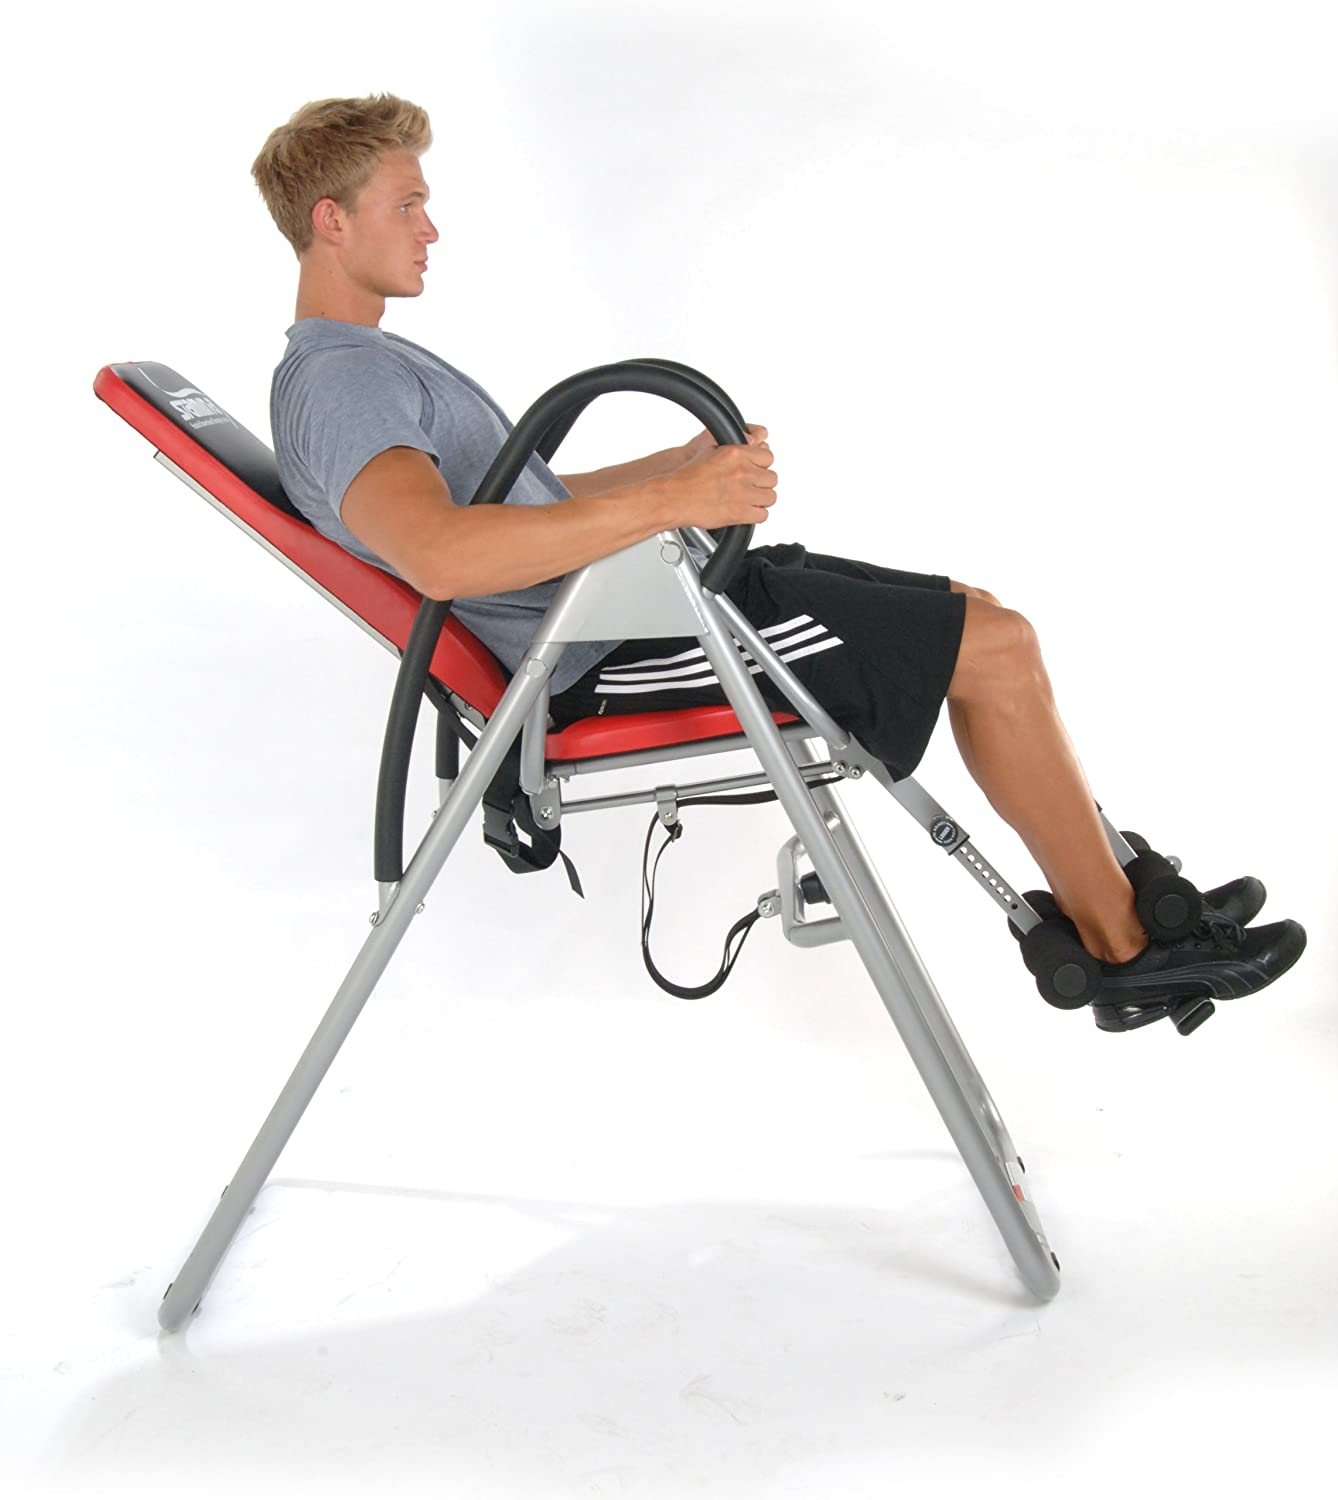 Best Back Pain Relief Exercises on an Inversion Chair